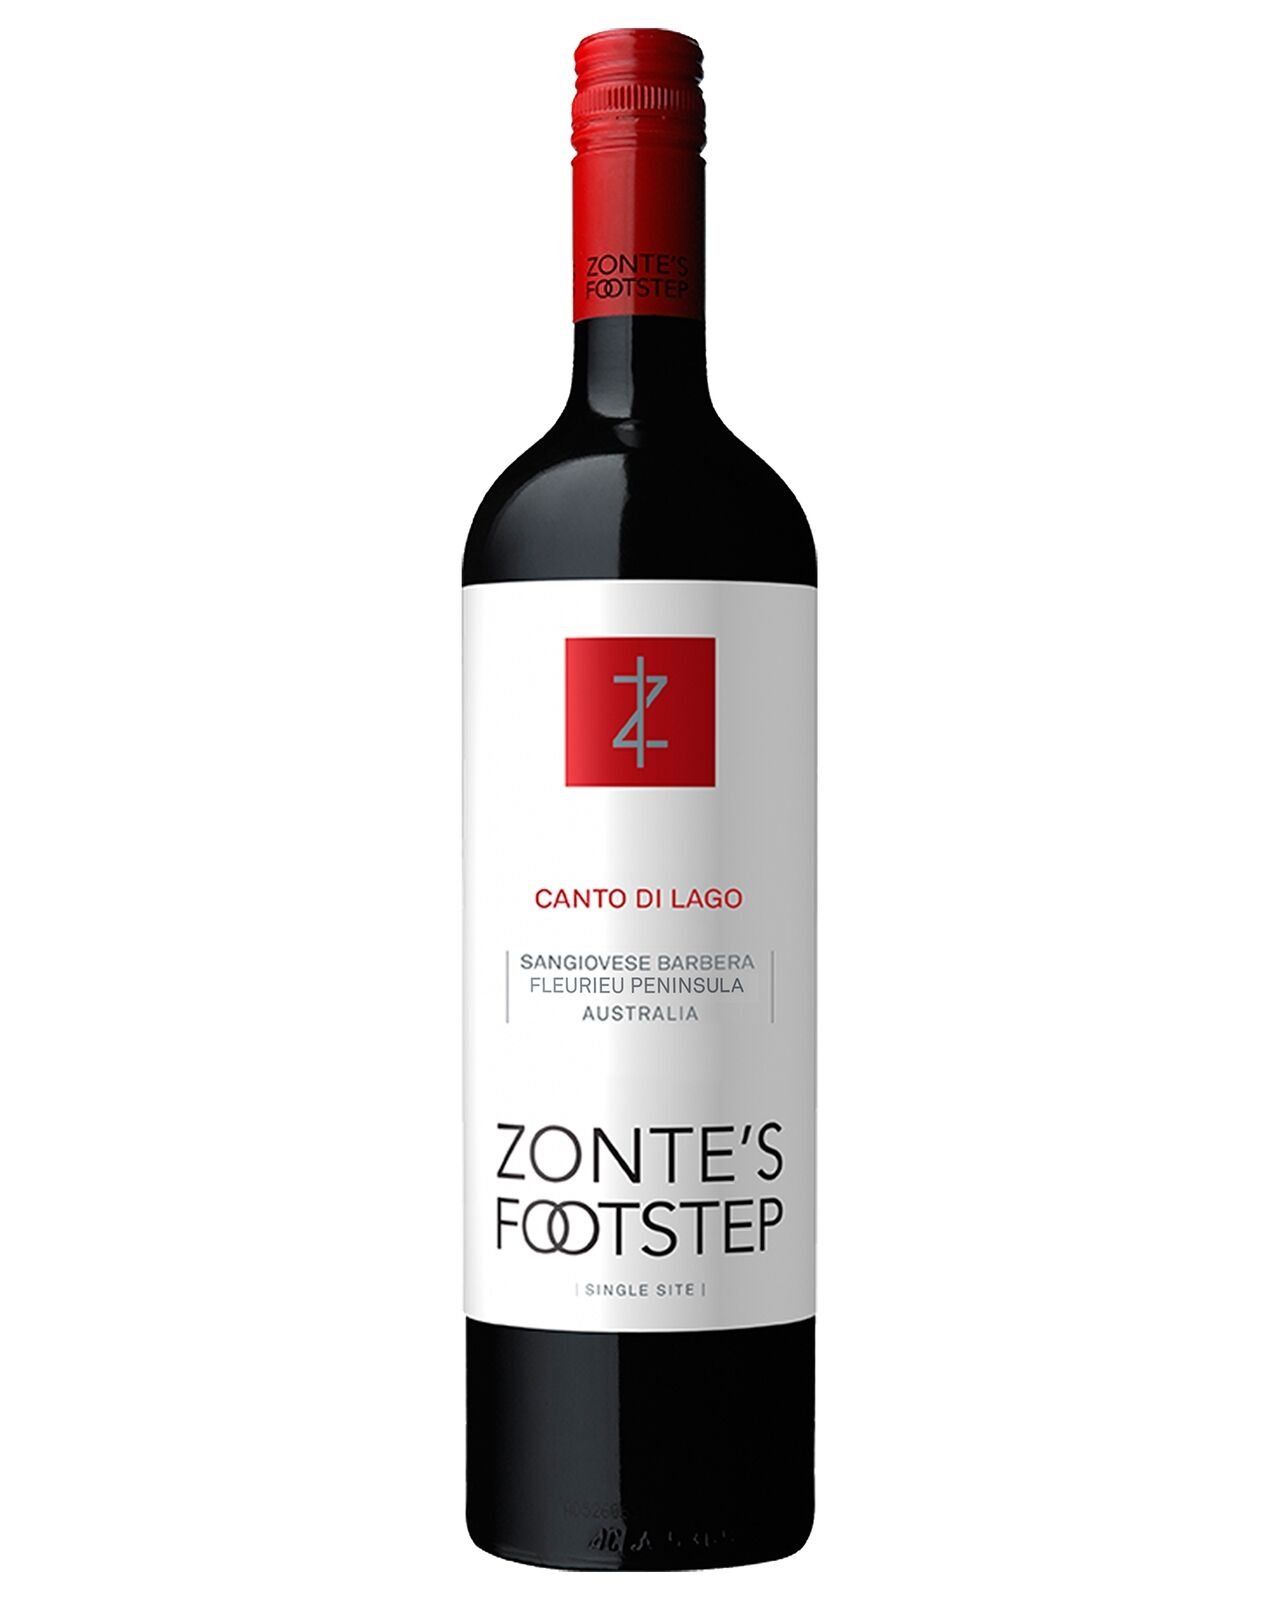 Zonte's Footstep Canto di Lago Sangiovese Barbera 2014 case of 12 Dry Red Wine